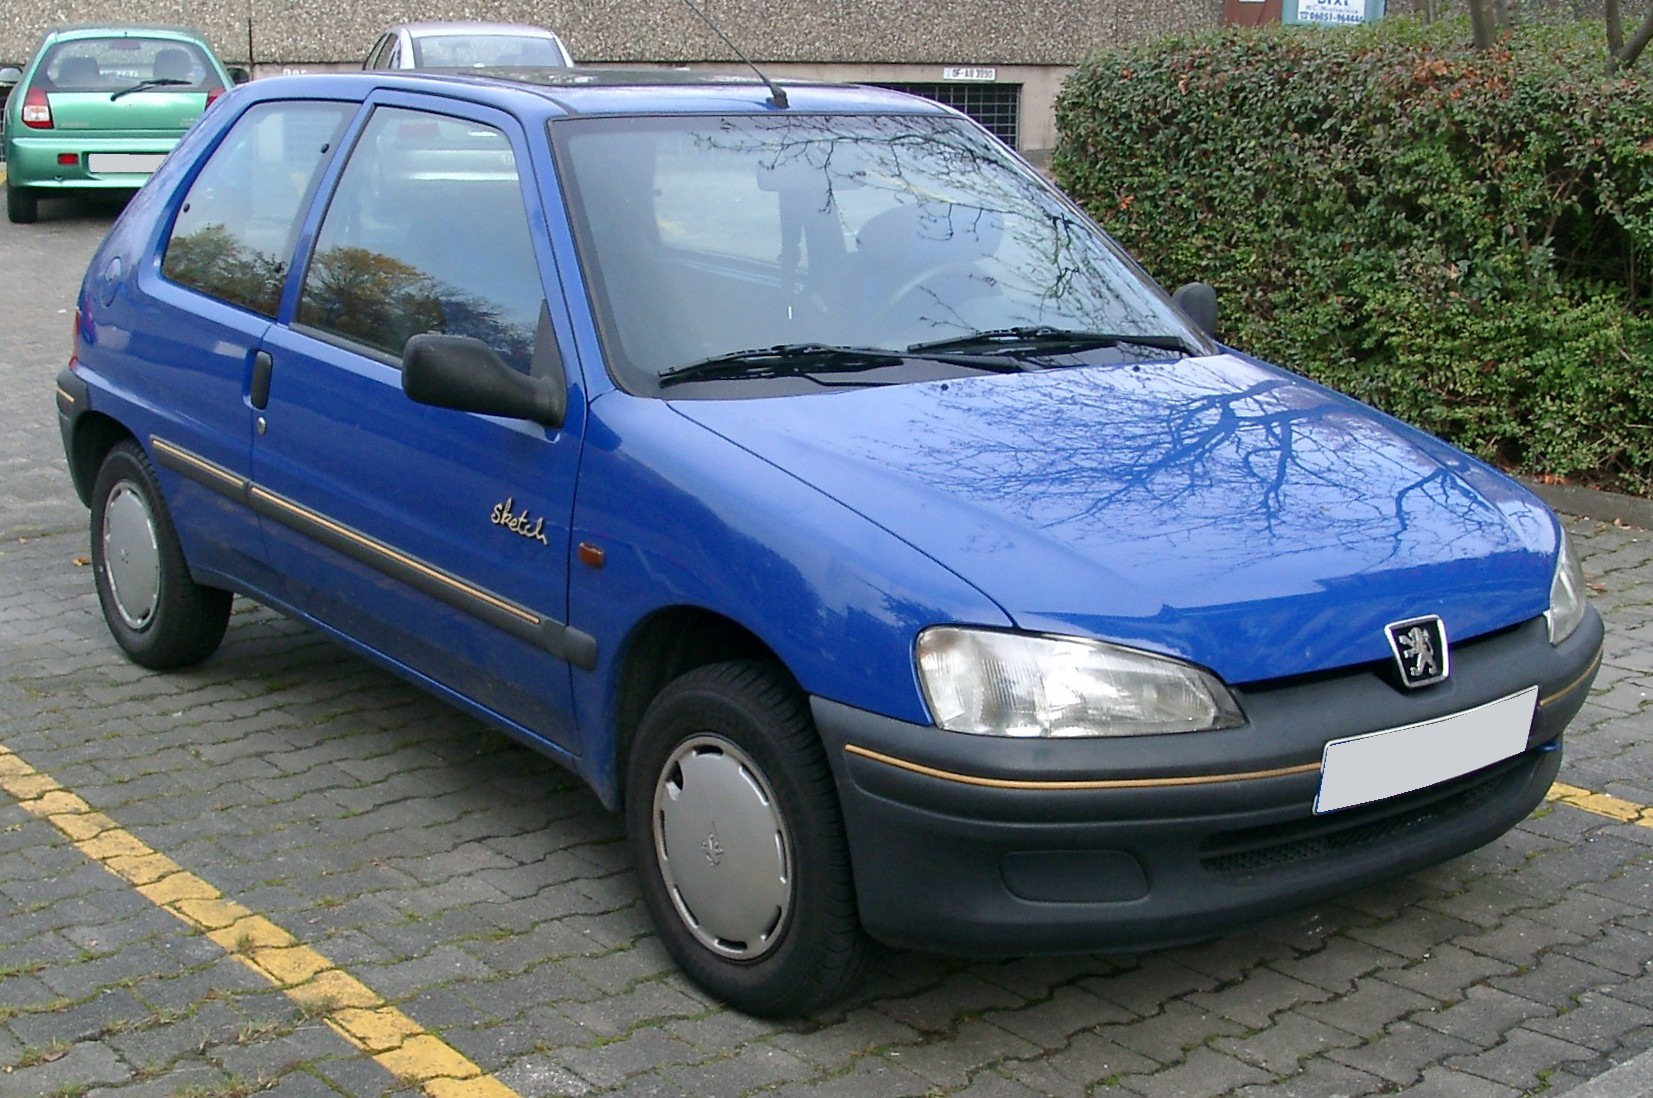 Peugeot 106 in addition History Of Rc Drift Cars likewise Euro Standards furthermore 573434965036550279 further Piaggio Porter Van Range Micro Machine Yahoo Cars. on electric car history